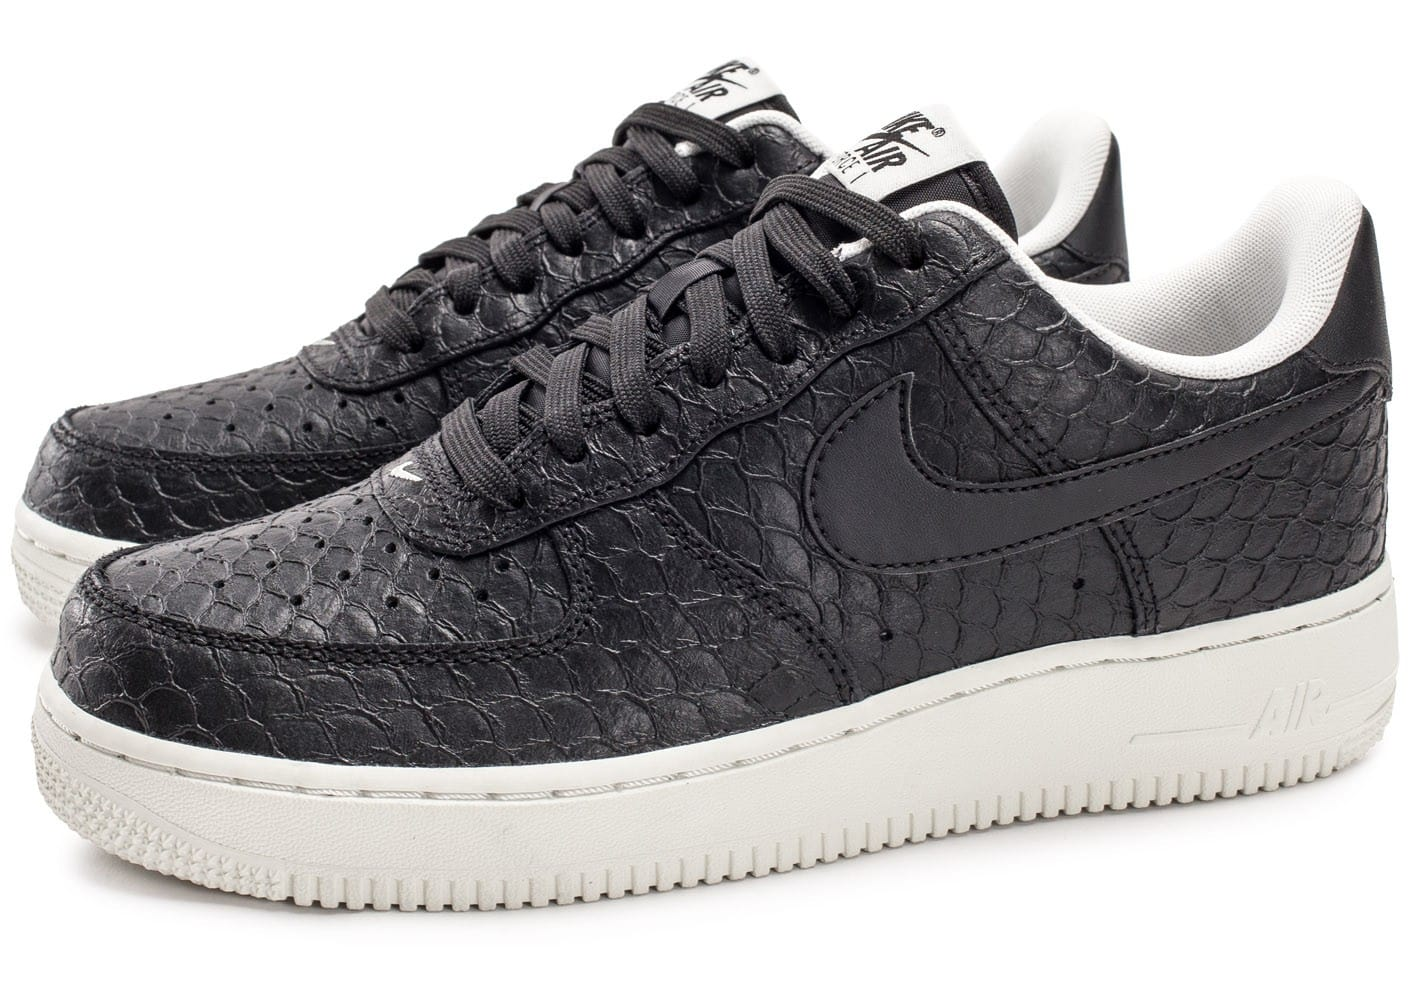 nike air force 1 crocodile noir,product nike baskets tennis